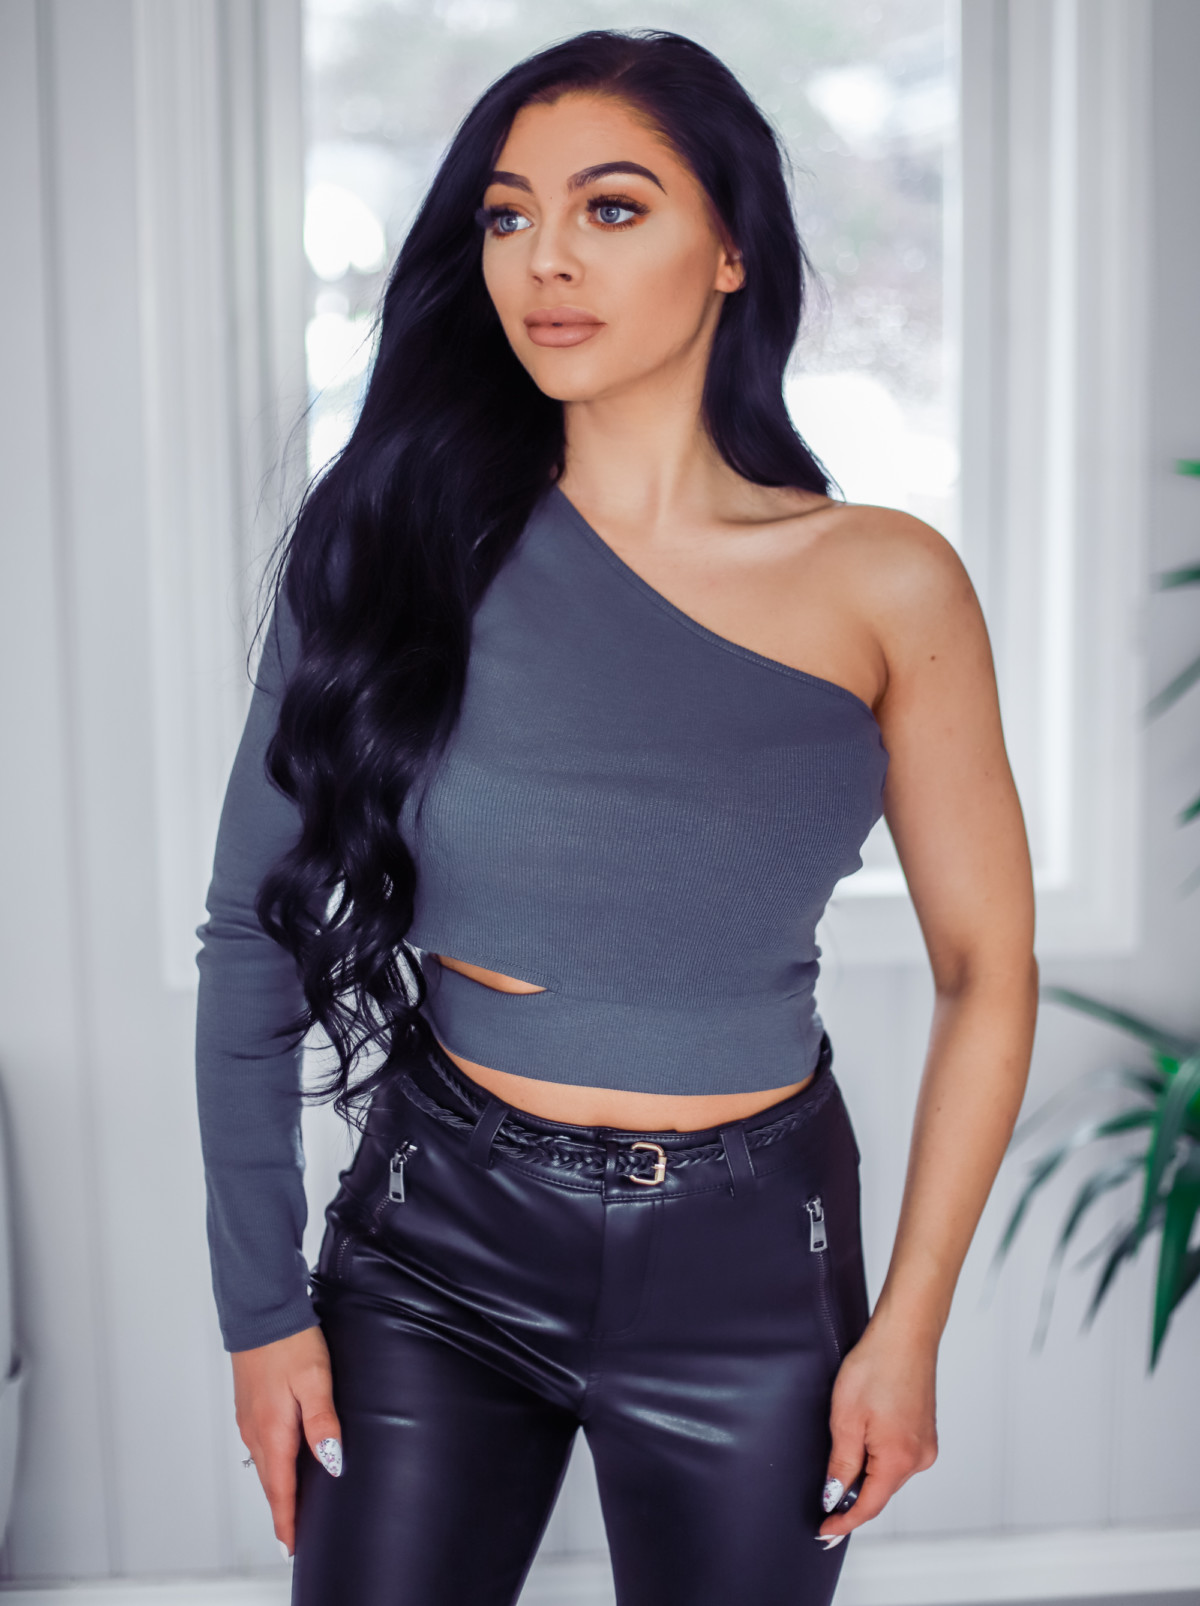 54 Best Blusa body images in 2019   Clothes, Cute outfits